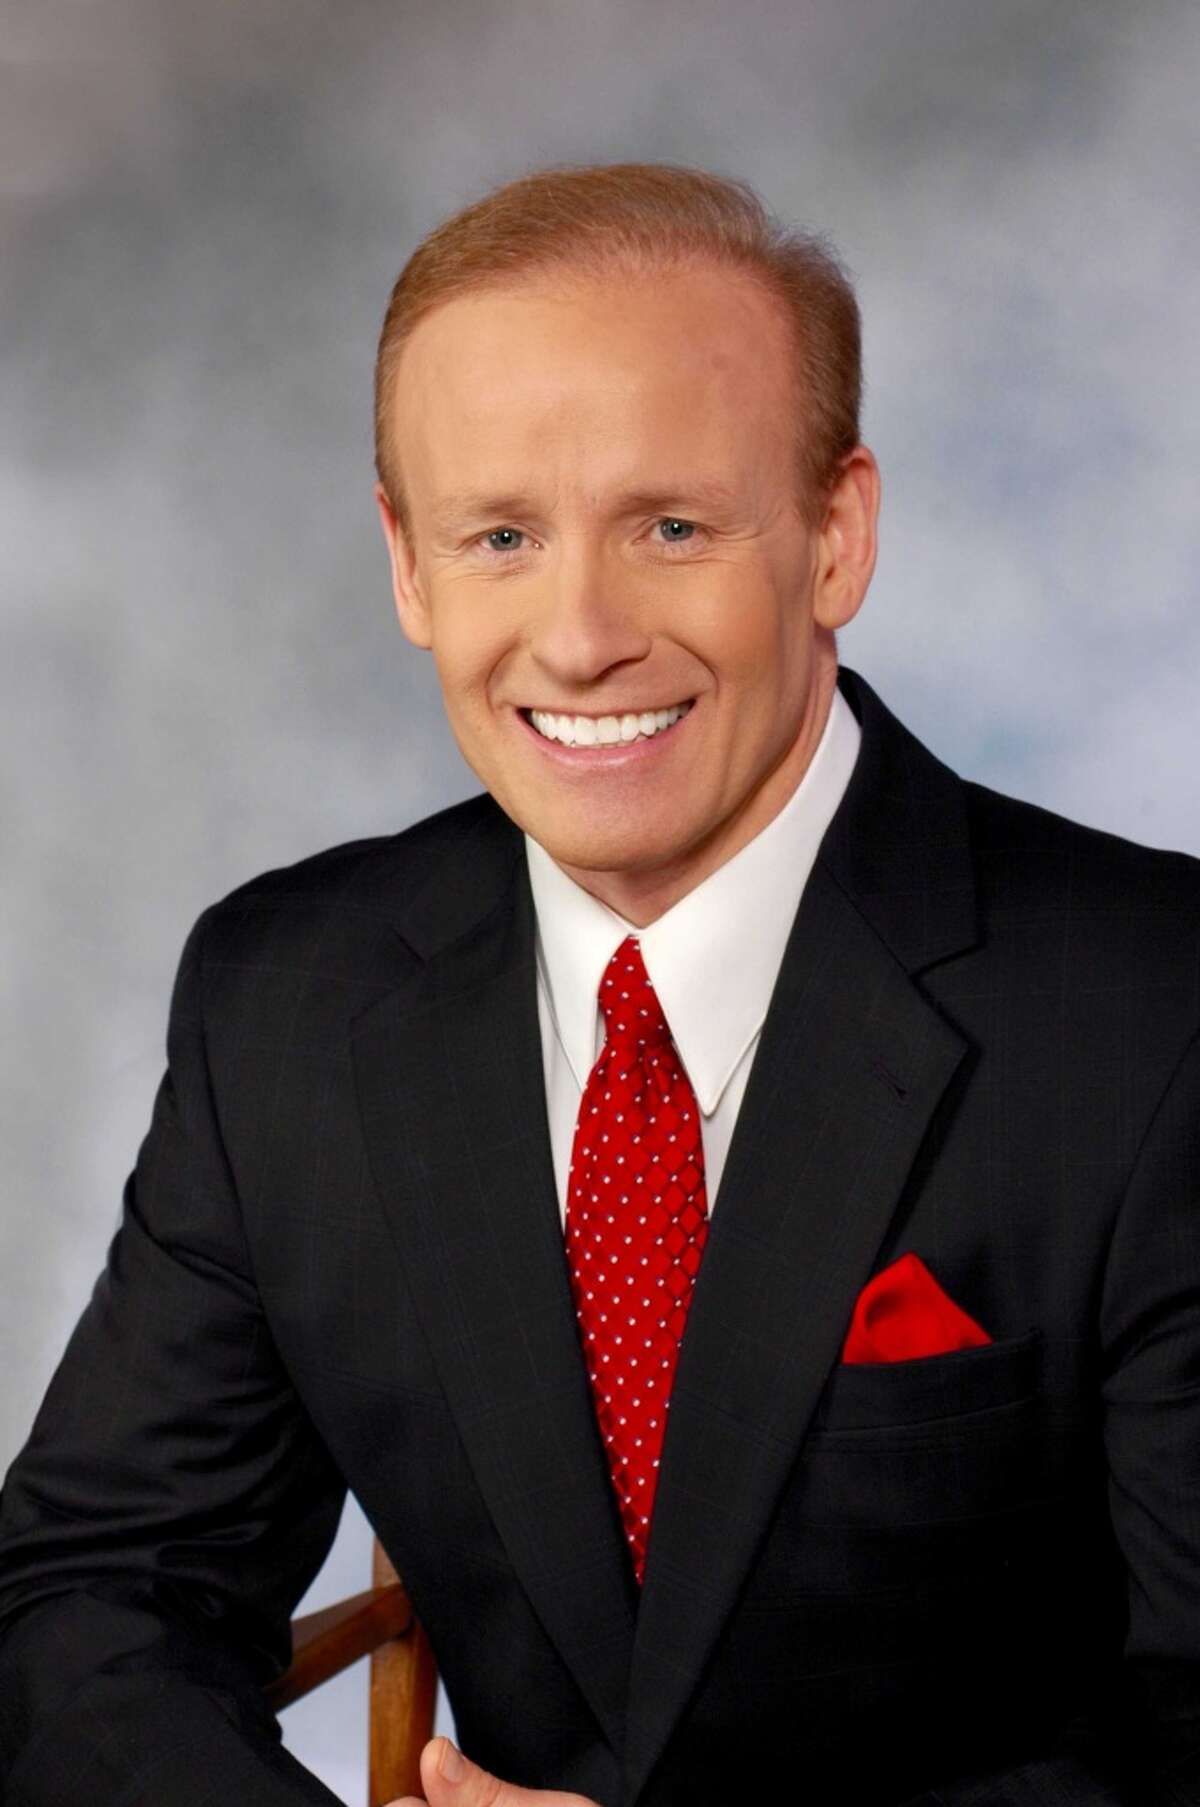 Longtime WNYT reporter Mark Mulholland will replace Jim Kambrich as the anchor of the 5 p.m. and 6 p.m. newscasts on NewsChannel 13. Kambrich is retiring and moving to New York City to join his wife who accepted a job this summer as the executive director of Twin Parks Montessori in Manhattan